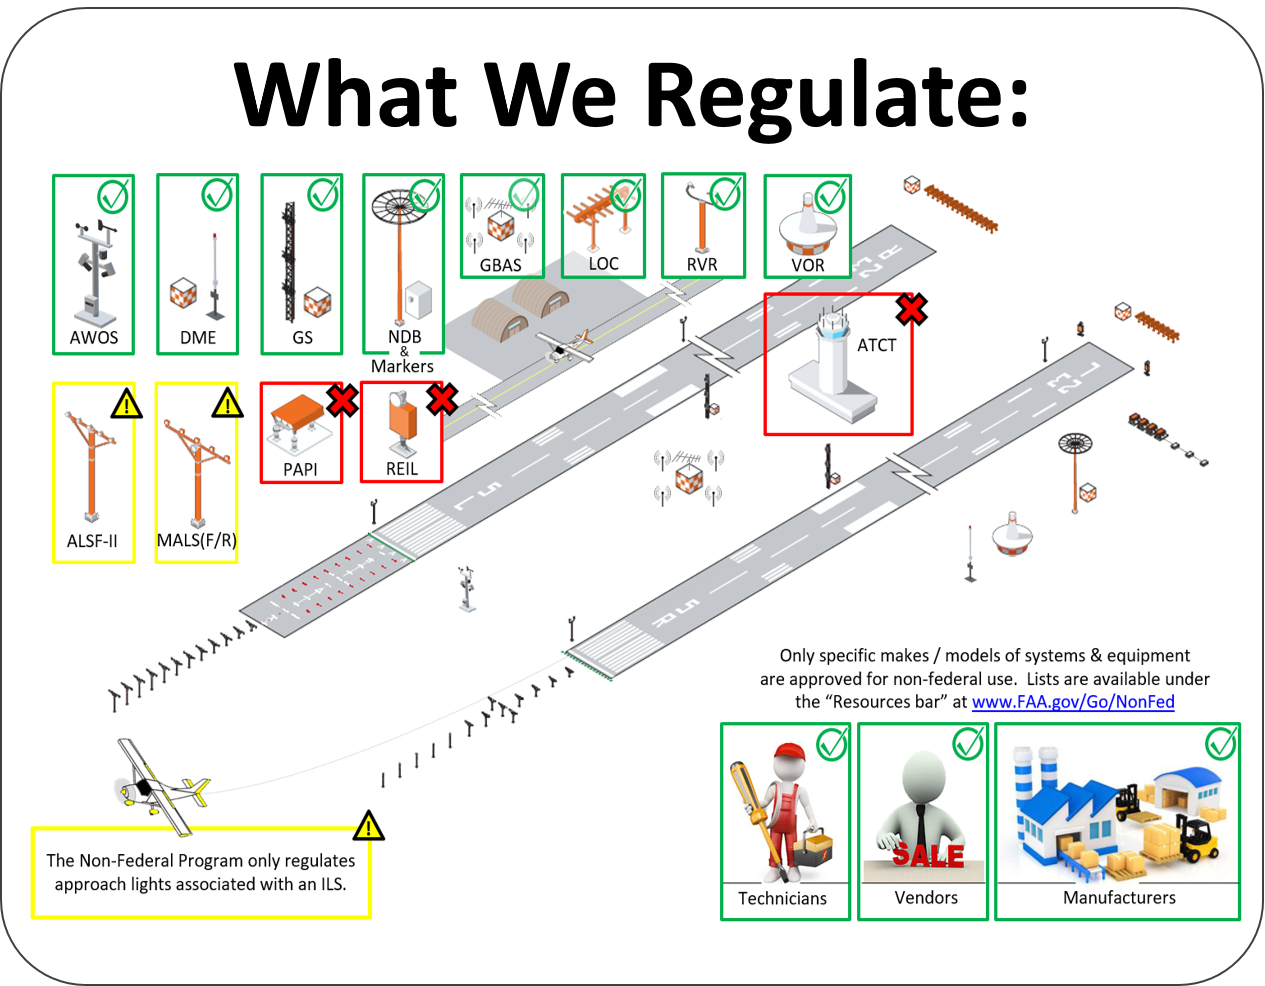 Diagram showing what we regulate